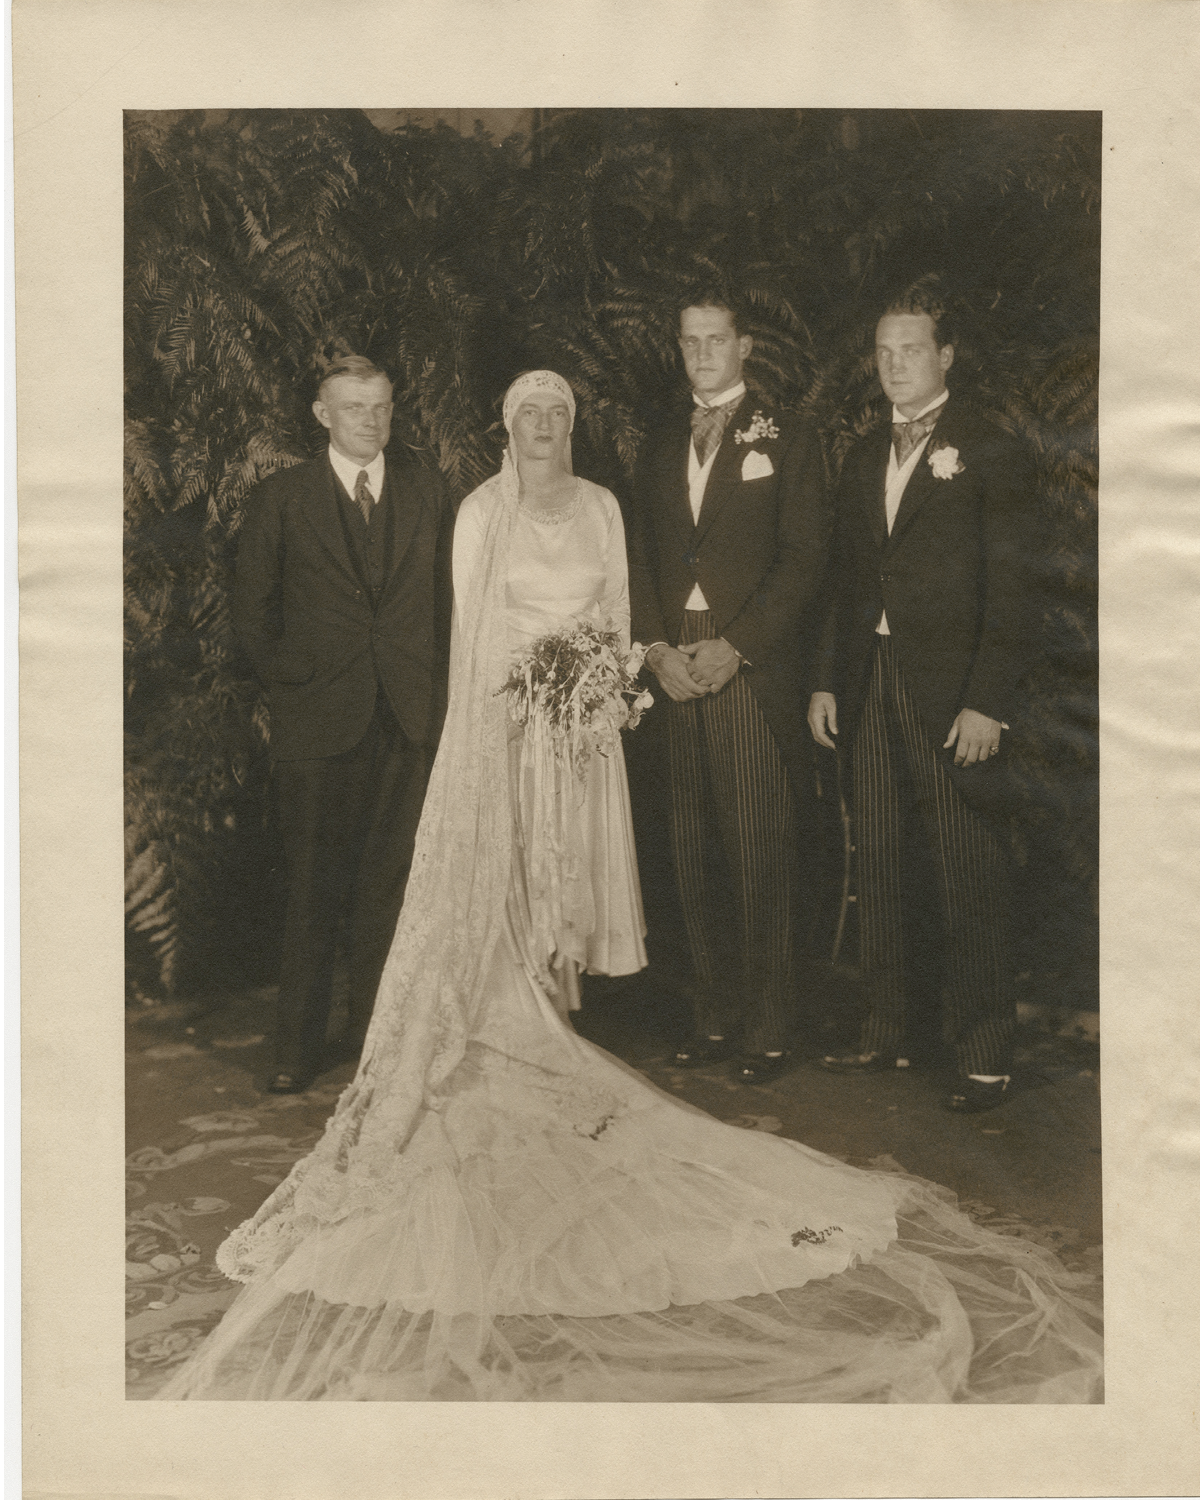 Gertrude and Sidney's wedding portrait, 1929